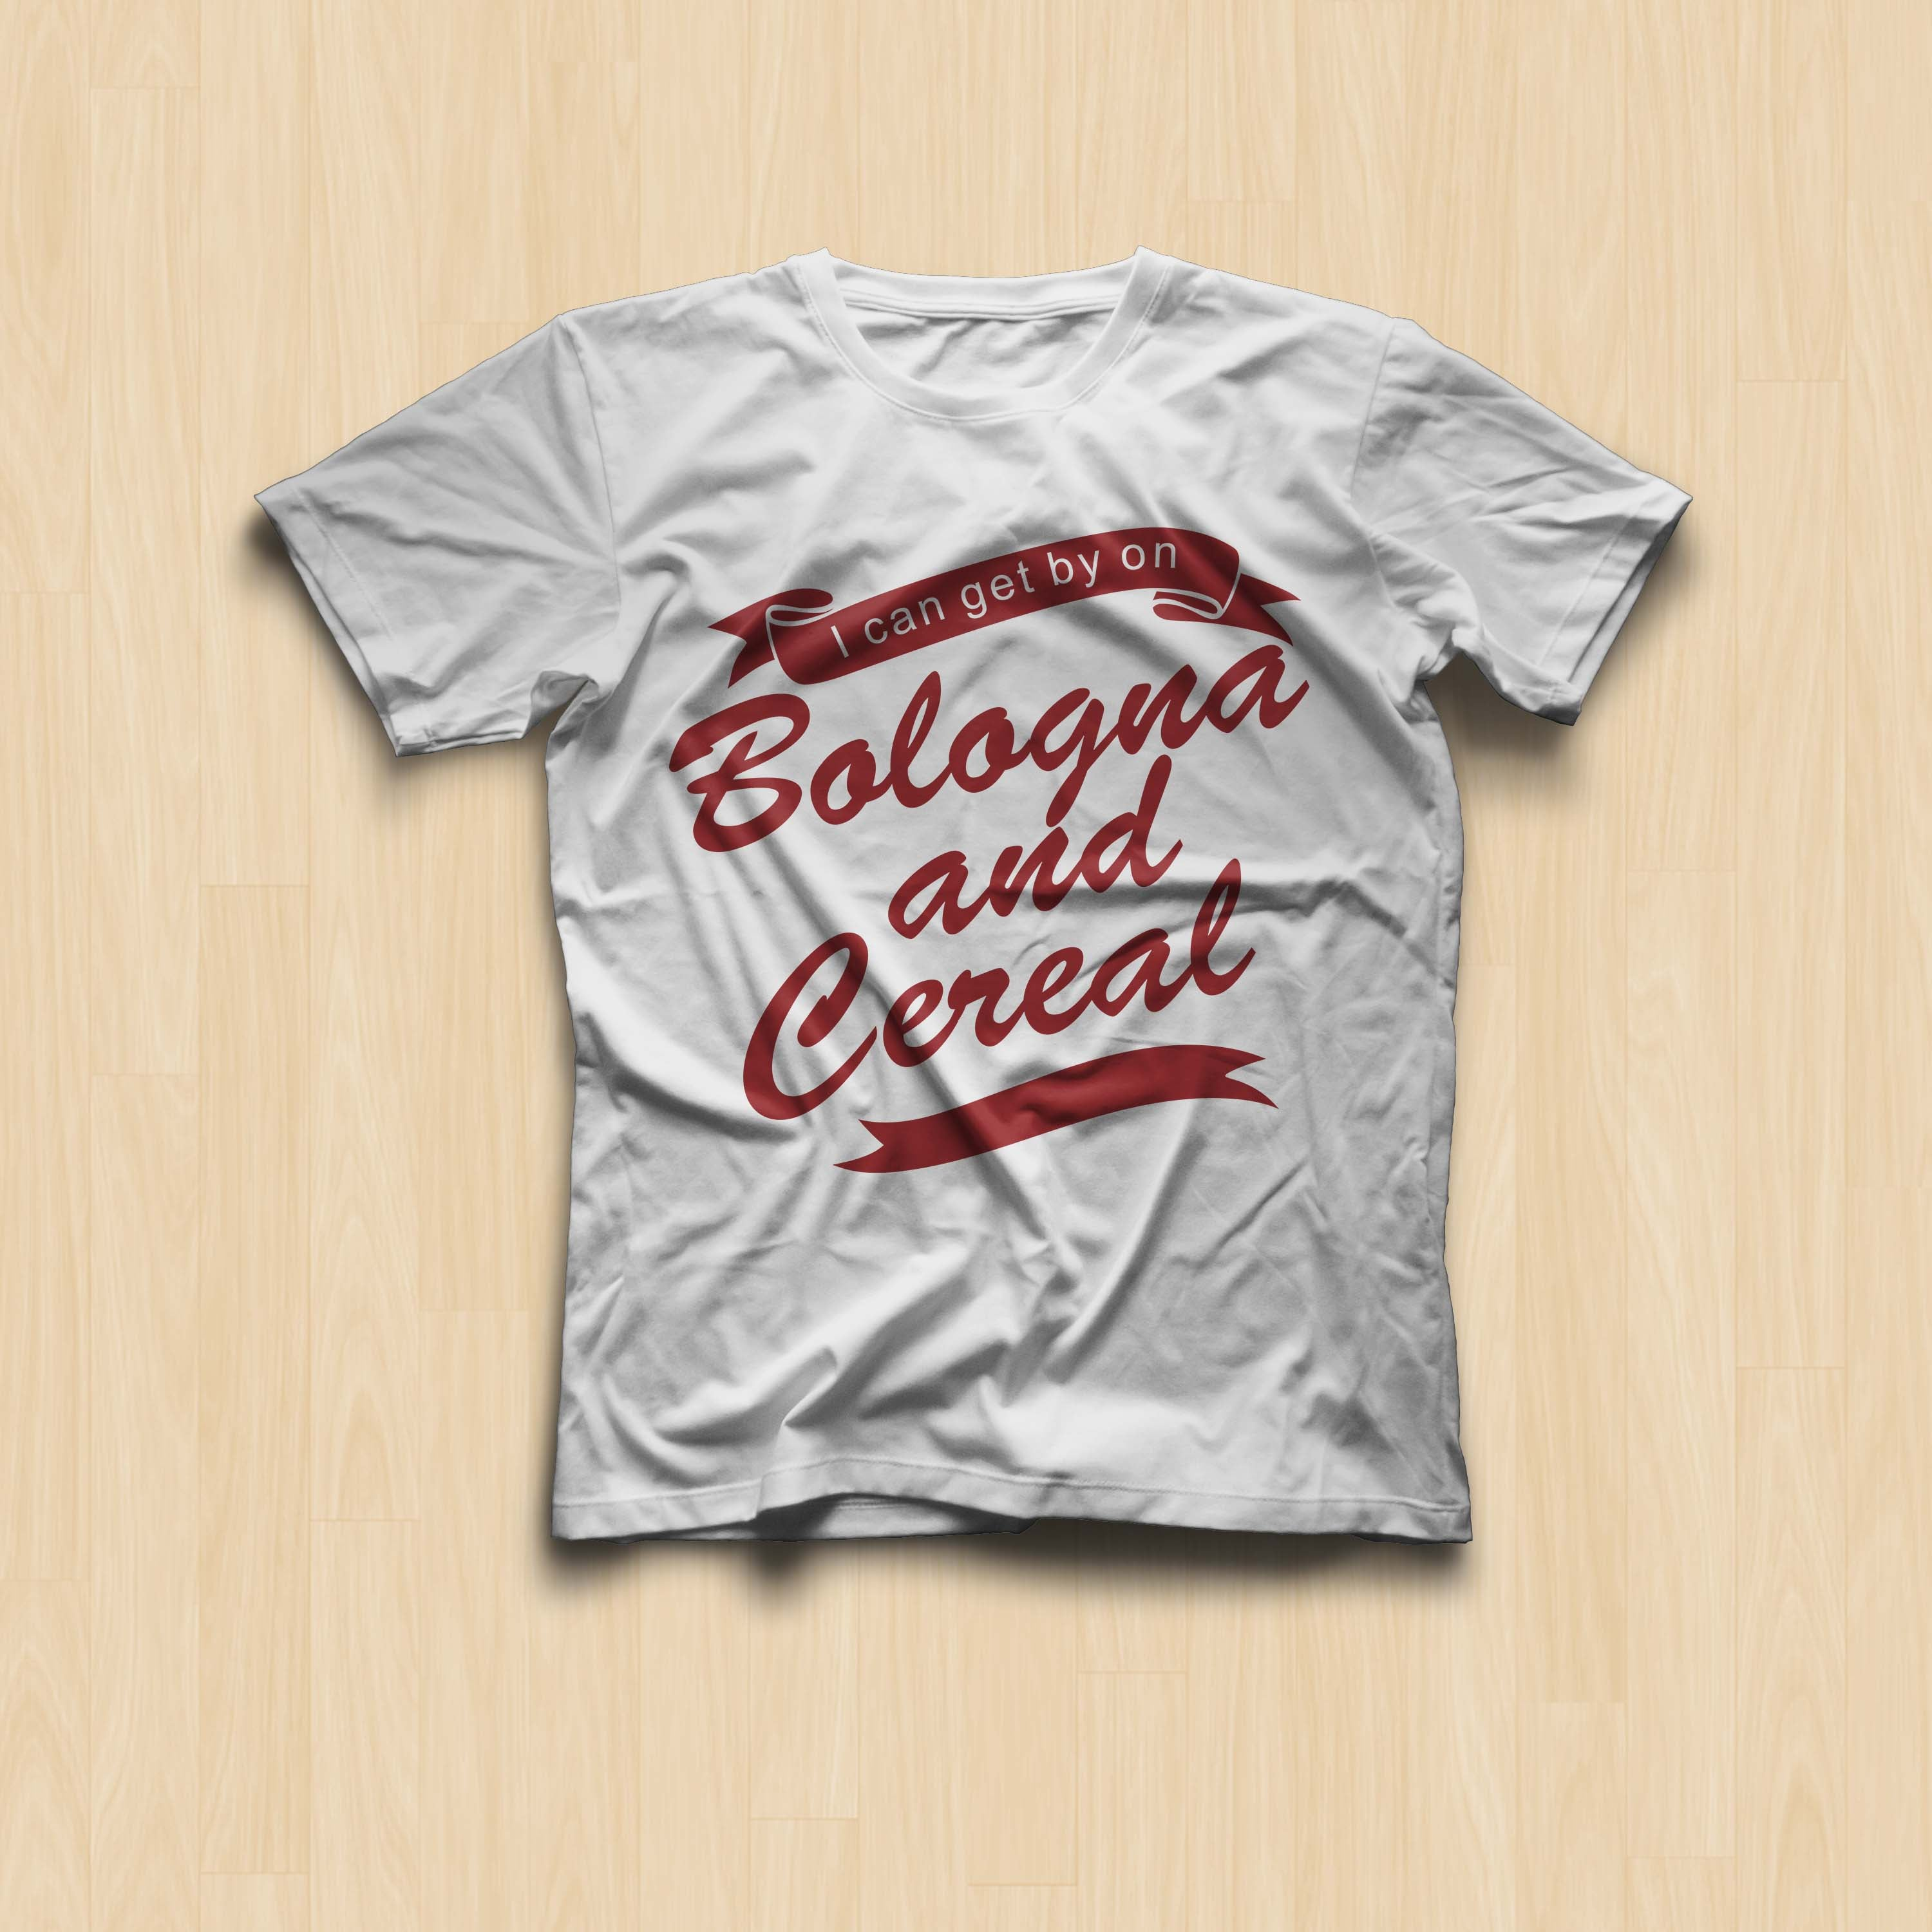 Bologna and Cereal Tee